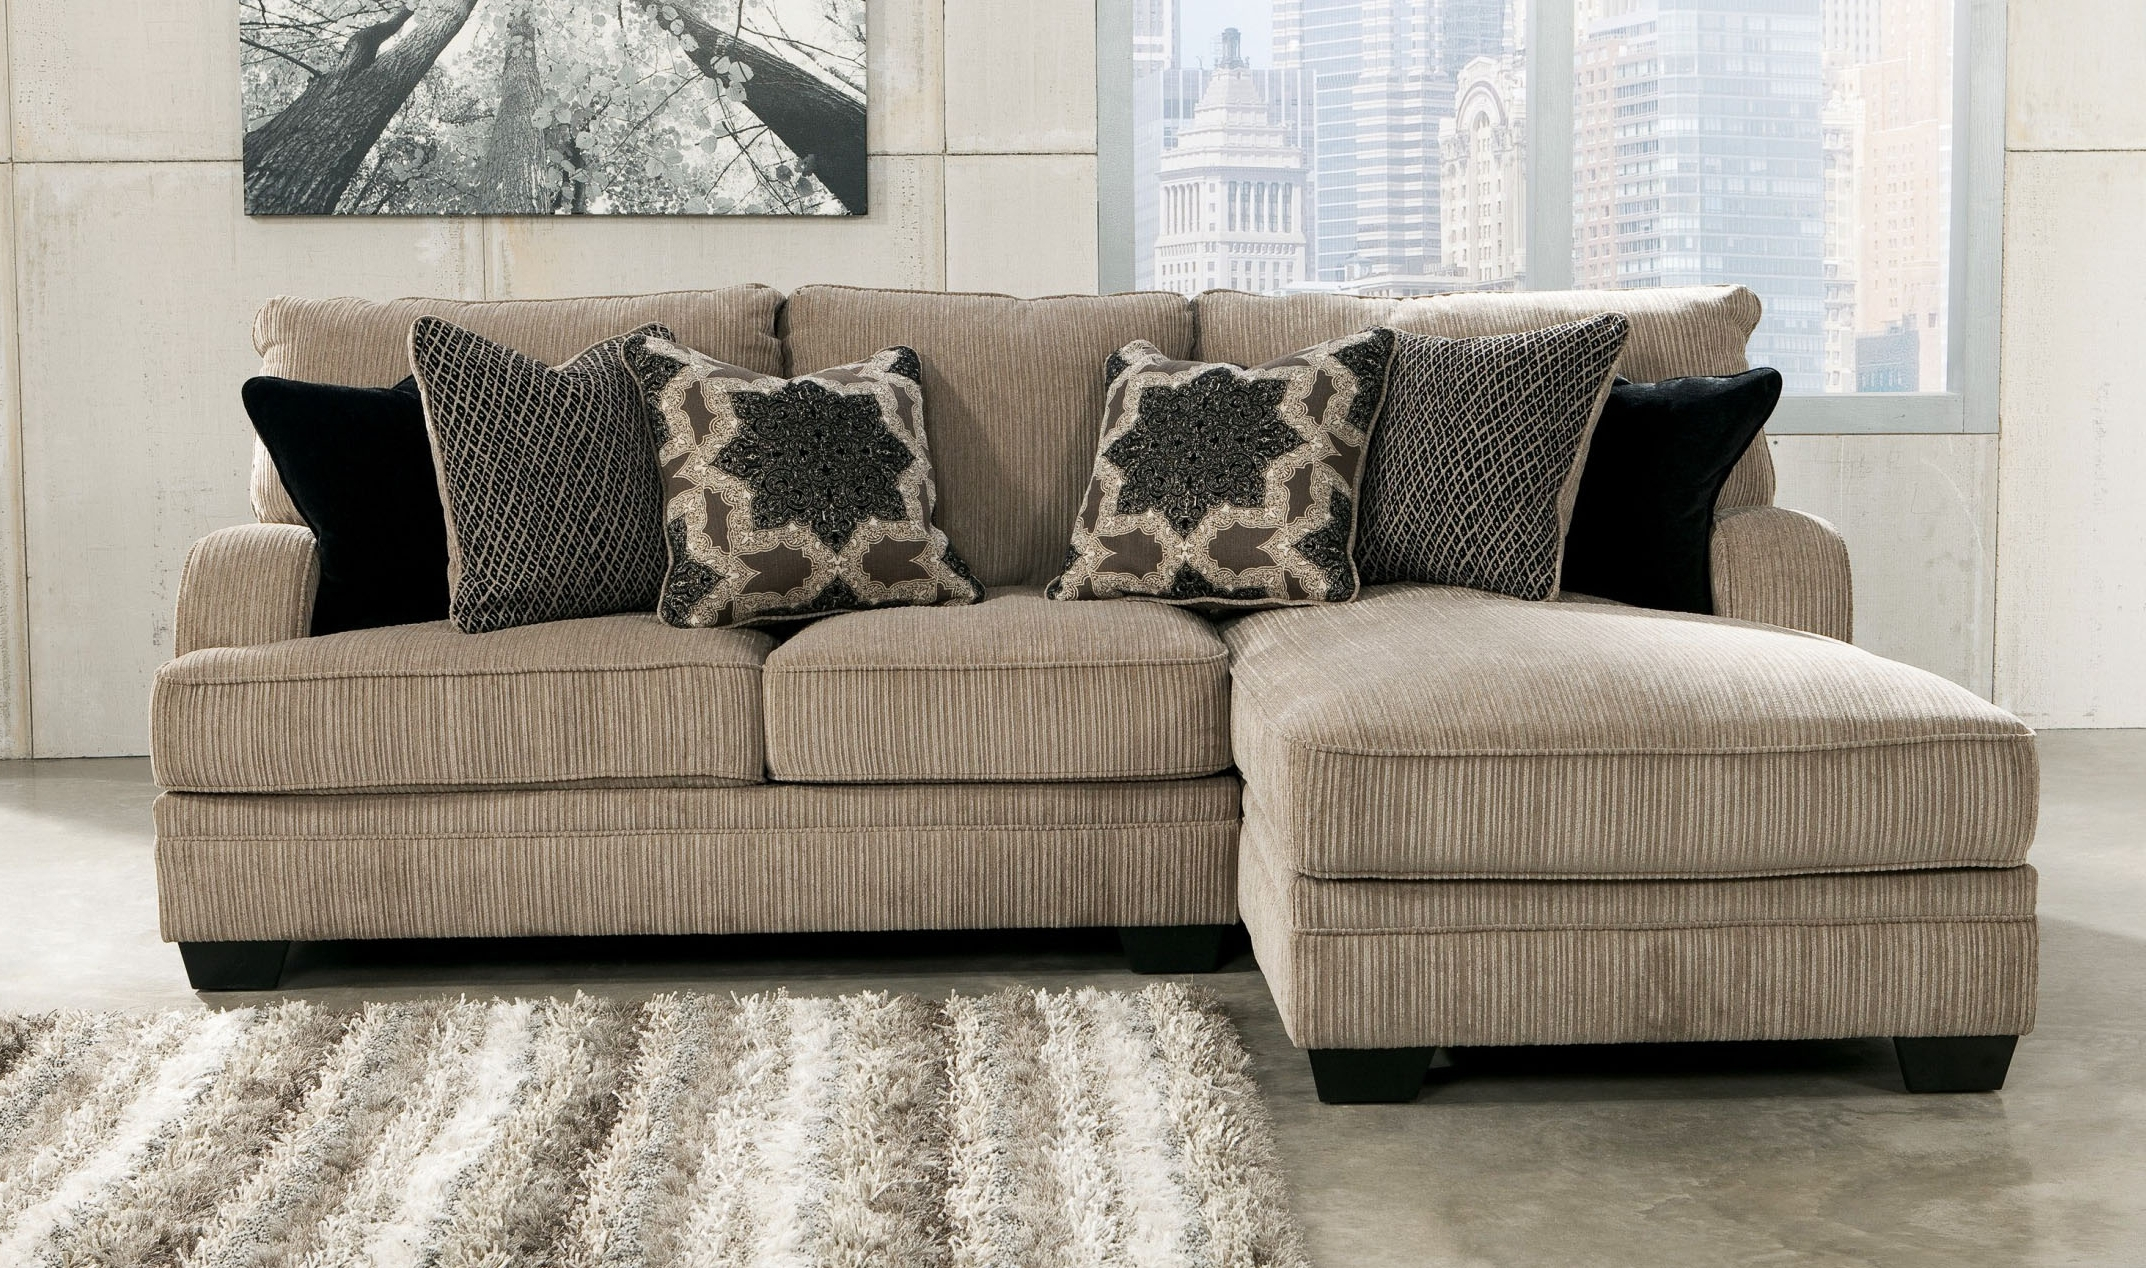 Most Recently Released Sectional Sofas In North Carolina in Best Small Sectional Sofas With Chaise 81 On Wide Sectional Sofa